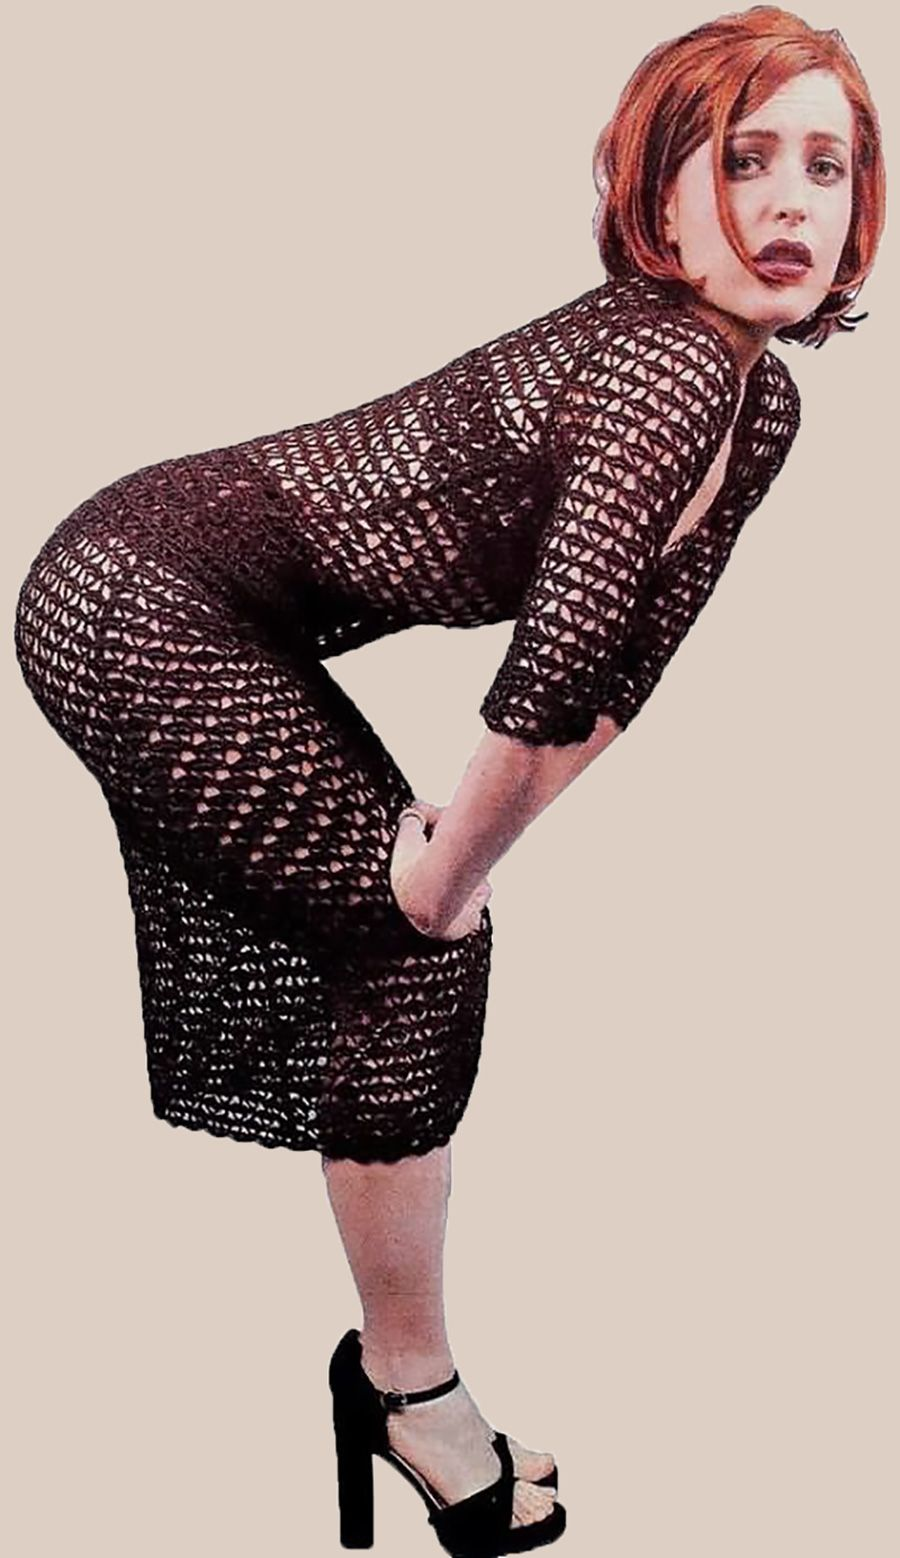 gillian anderson booty